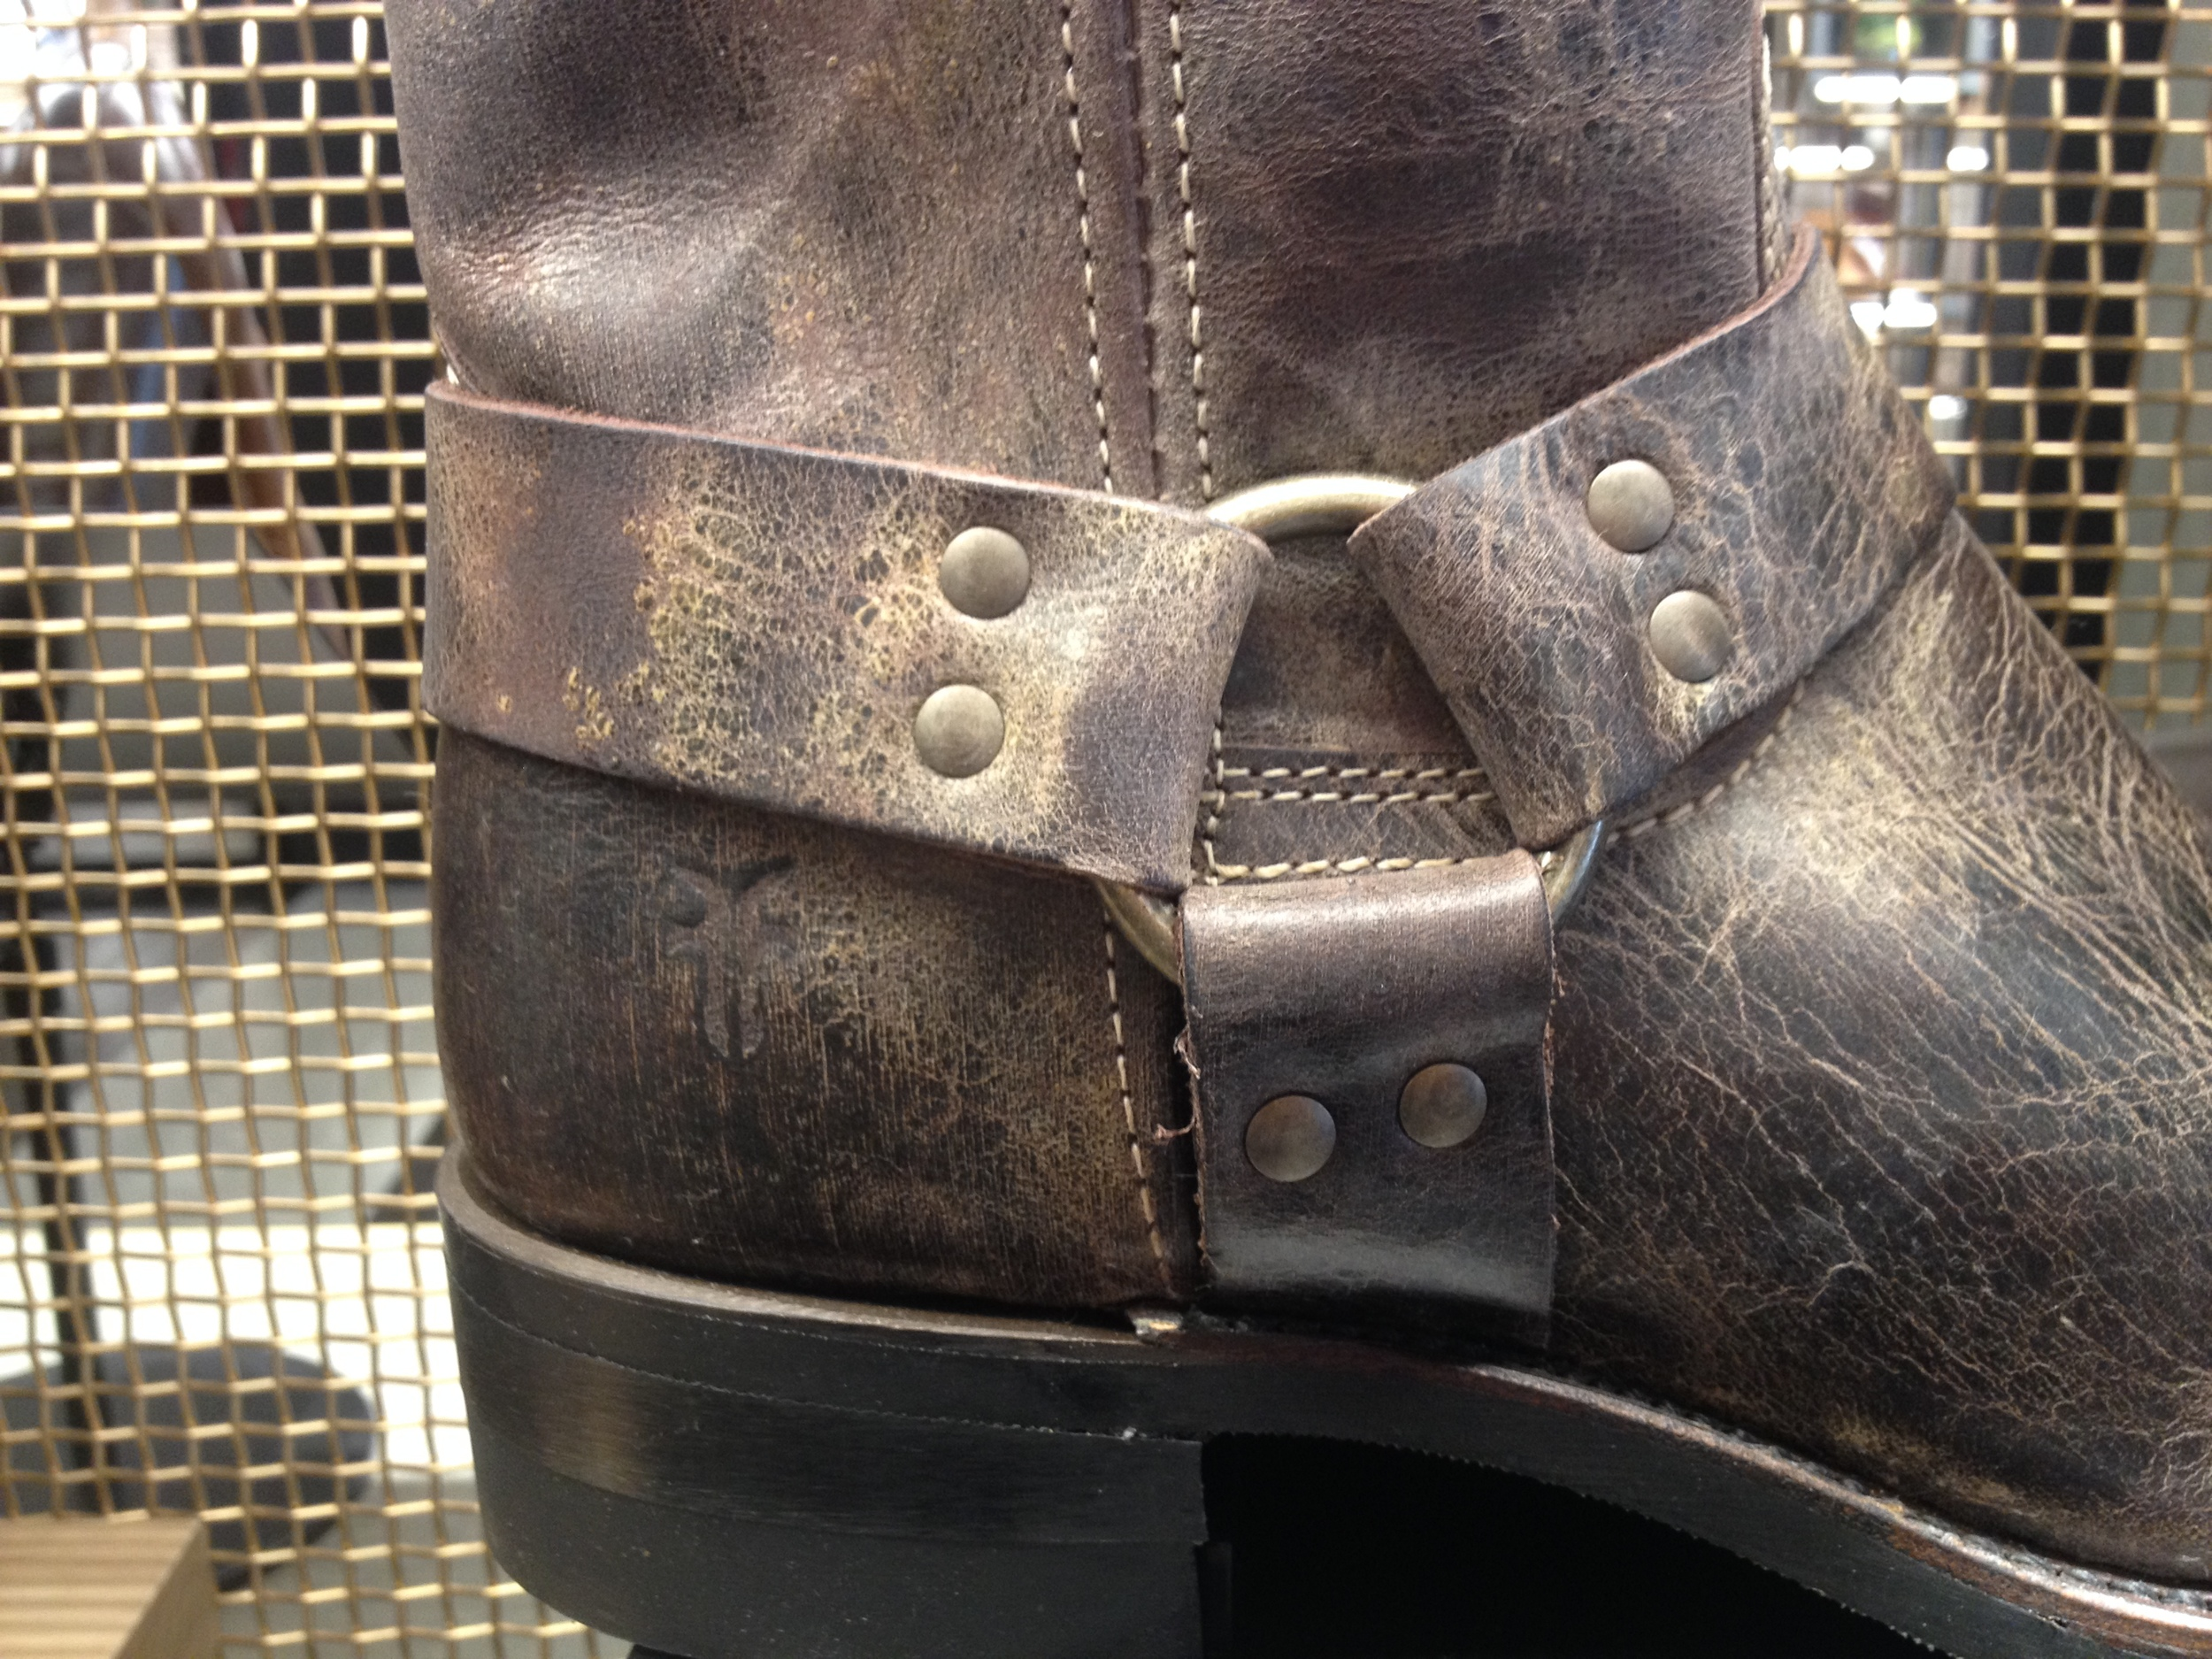 The iconic, motorcycle boot.